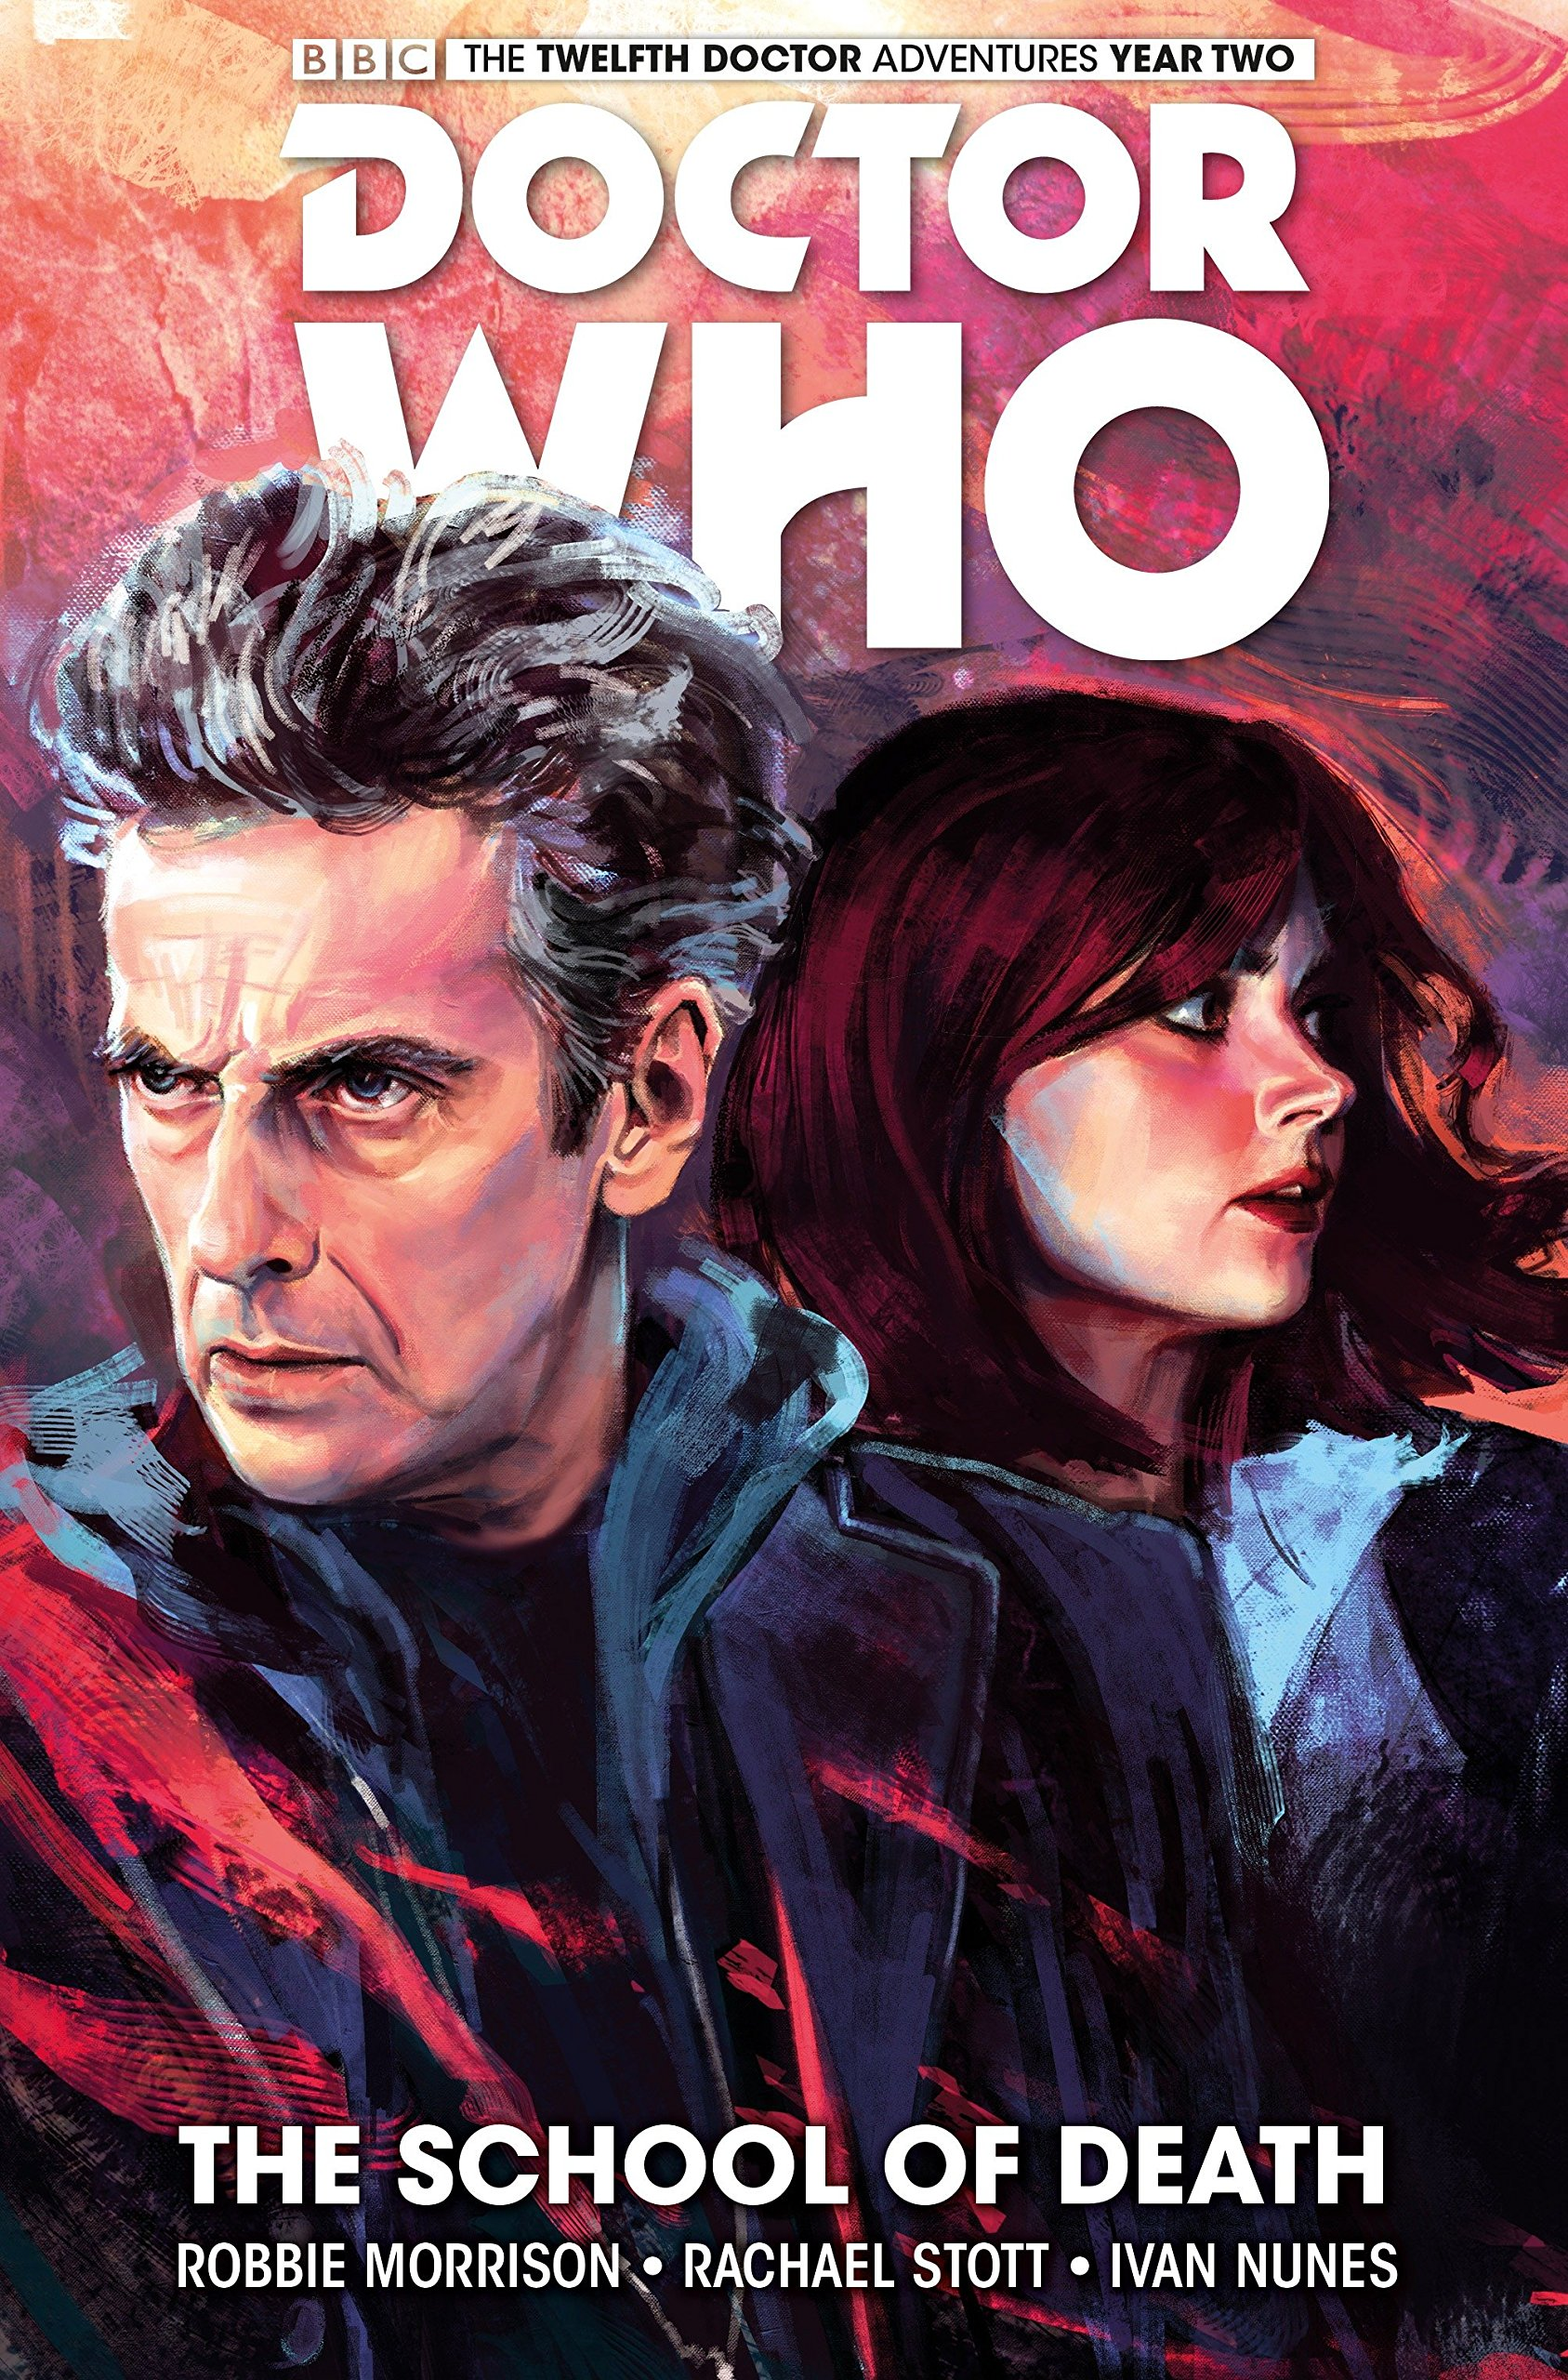 Doctor Who: The Twelfth Doctor Volume 4 - The School of Death (Doctor Who New Adventures) pdf